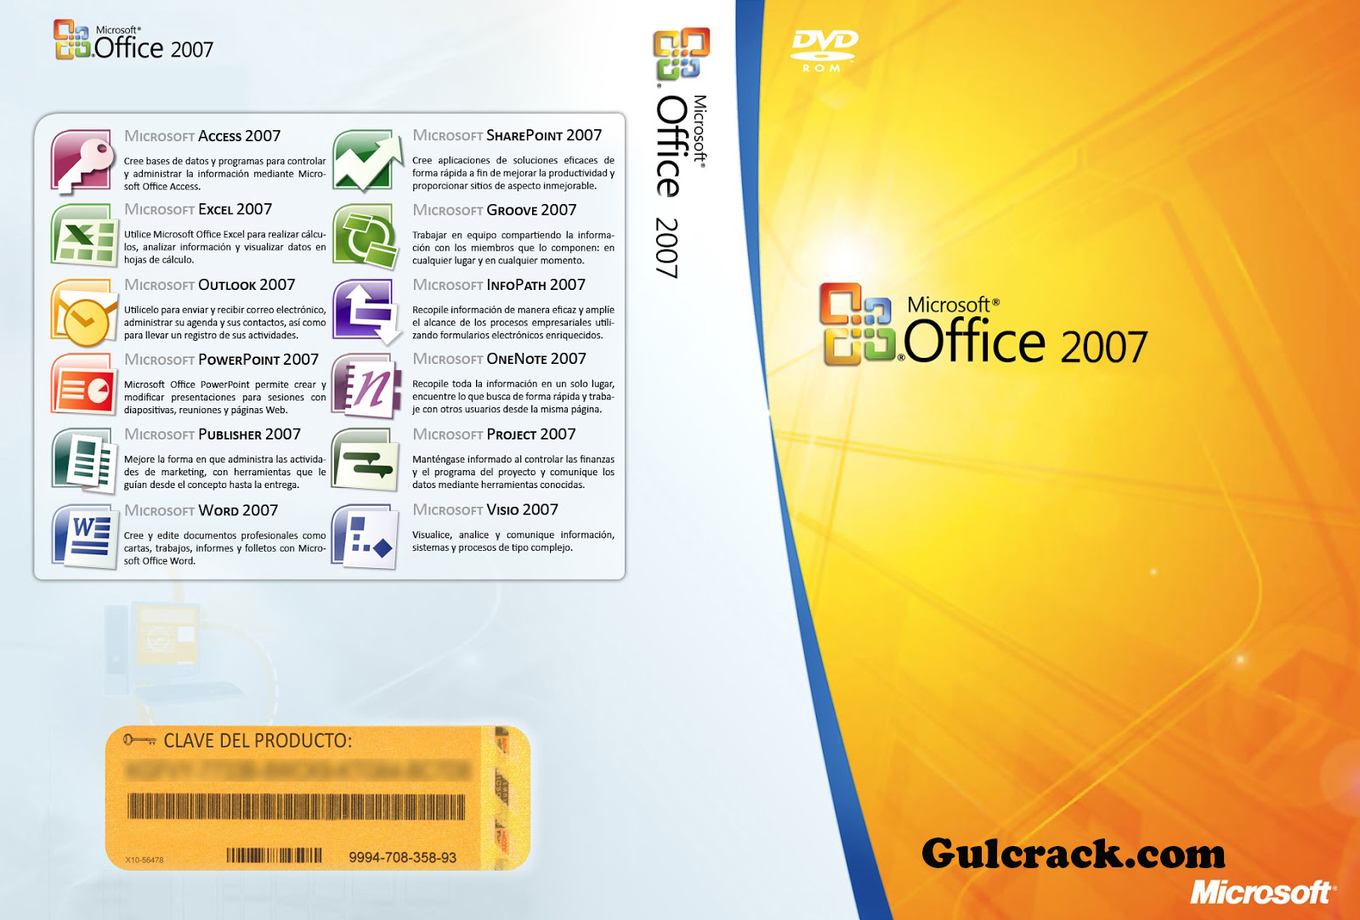 word 2007 download full version free